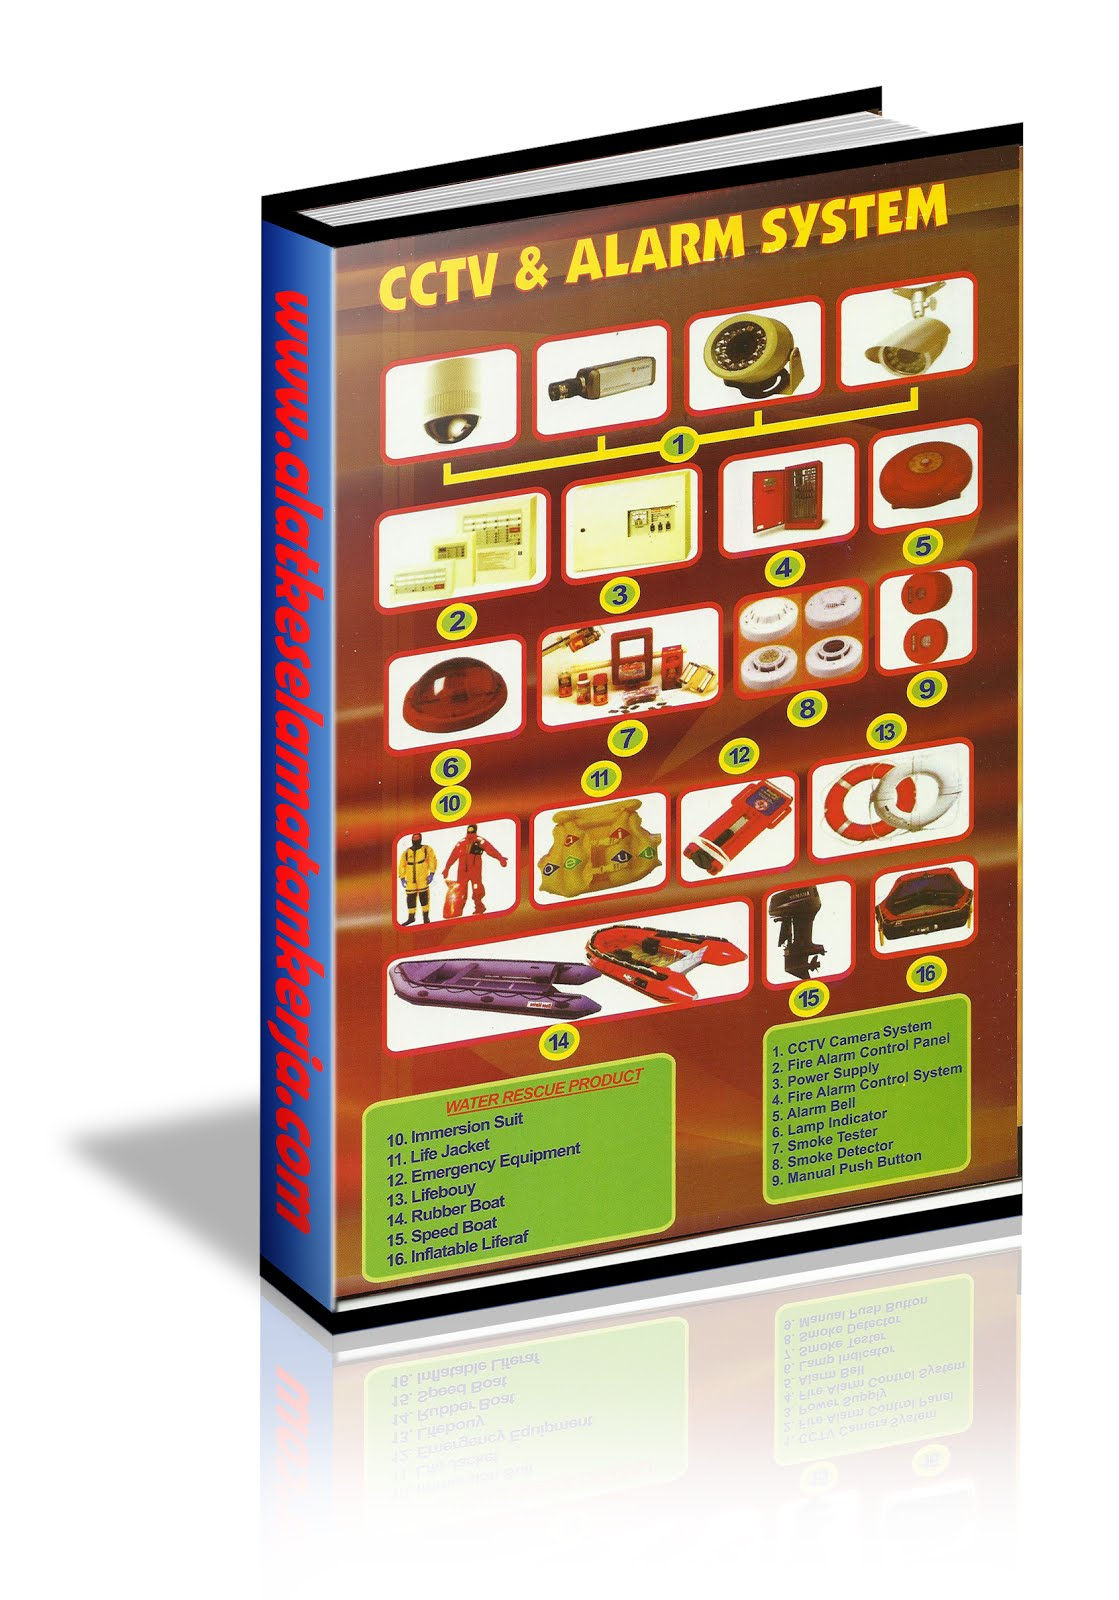 CCTV & FIRE ALARM SYSTEM AND RESCUE PRODUCT